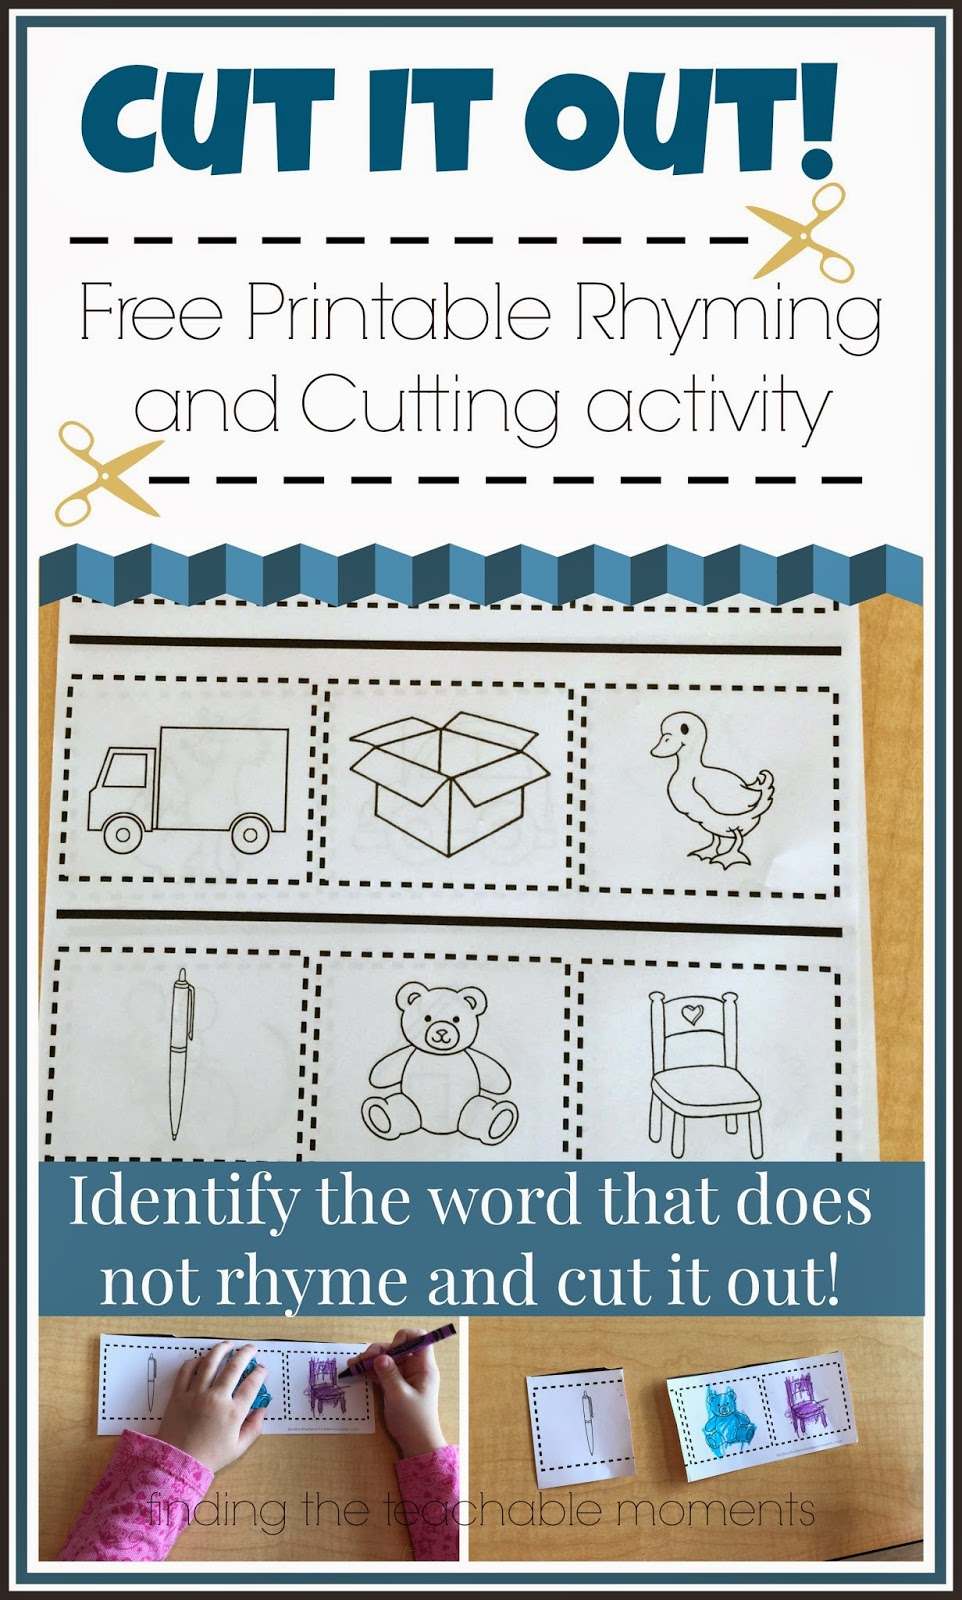 Cut It Out! --> Cut out the word that doesn't rhyme.  Free Printable!